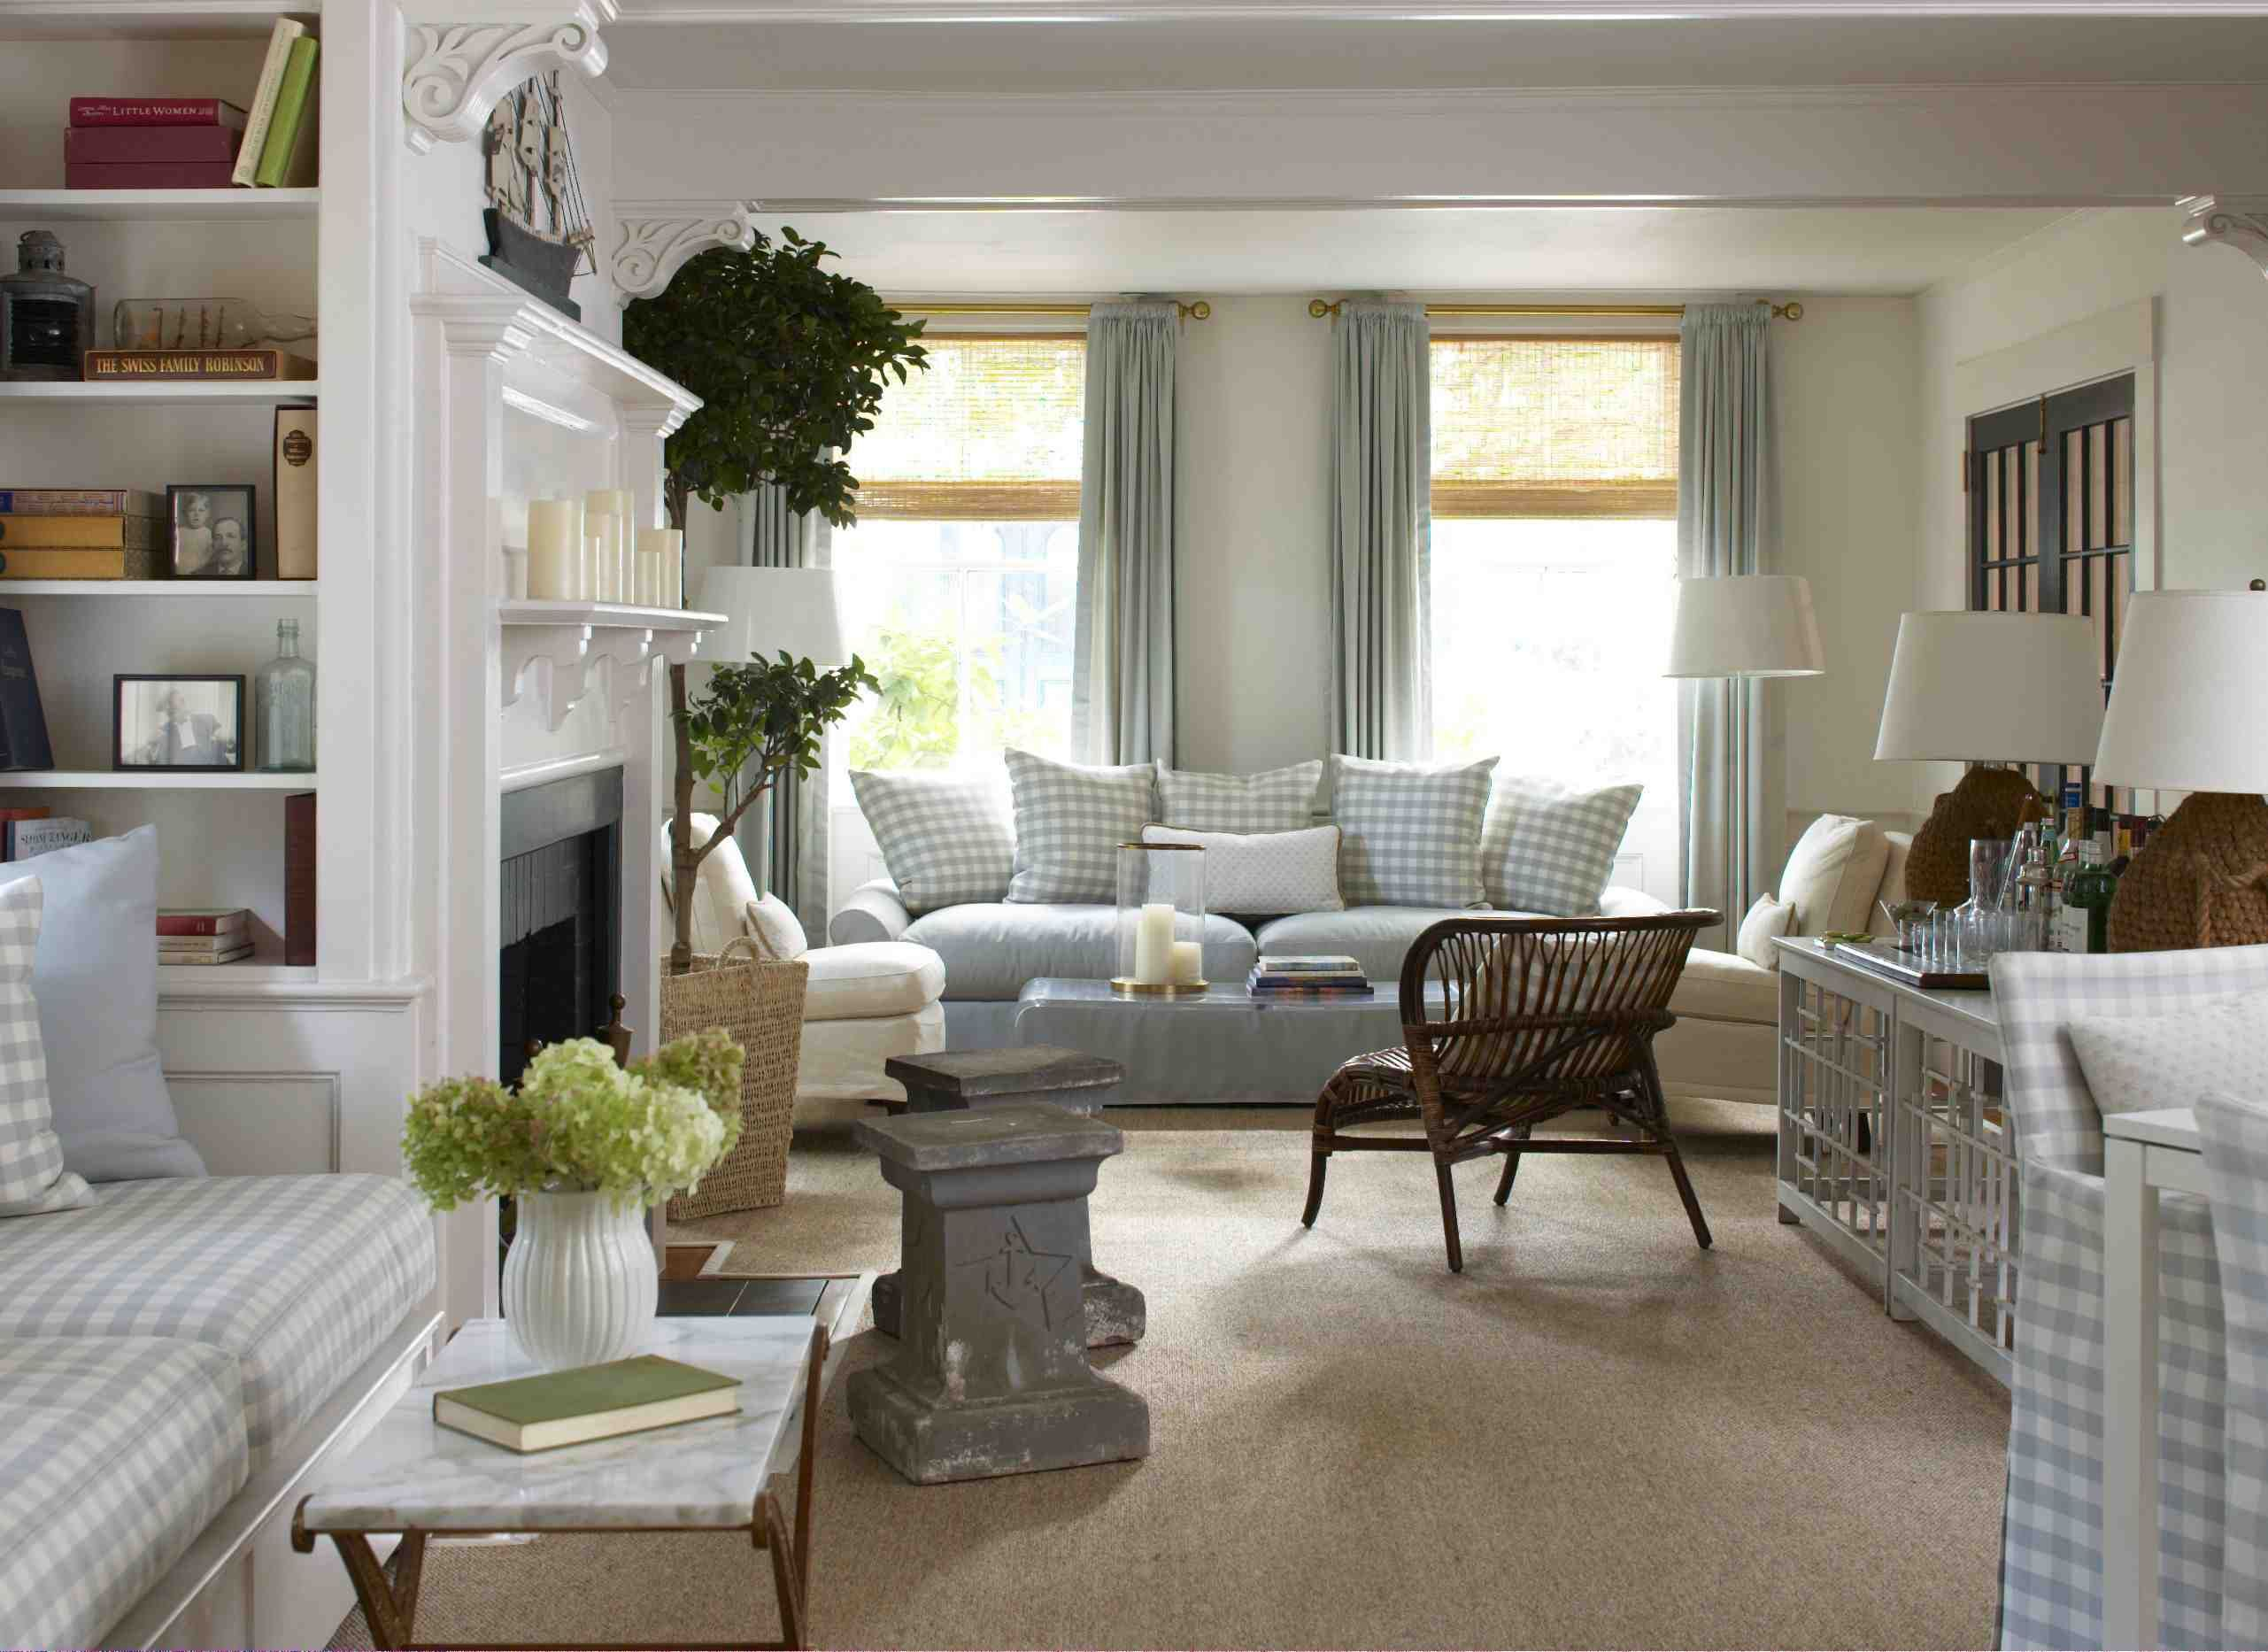 surprising new england style living room | Pin by Kay Slawnikowski on Interior Design Town & Country ...